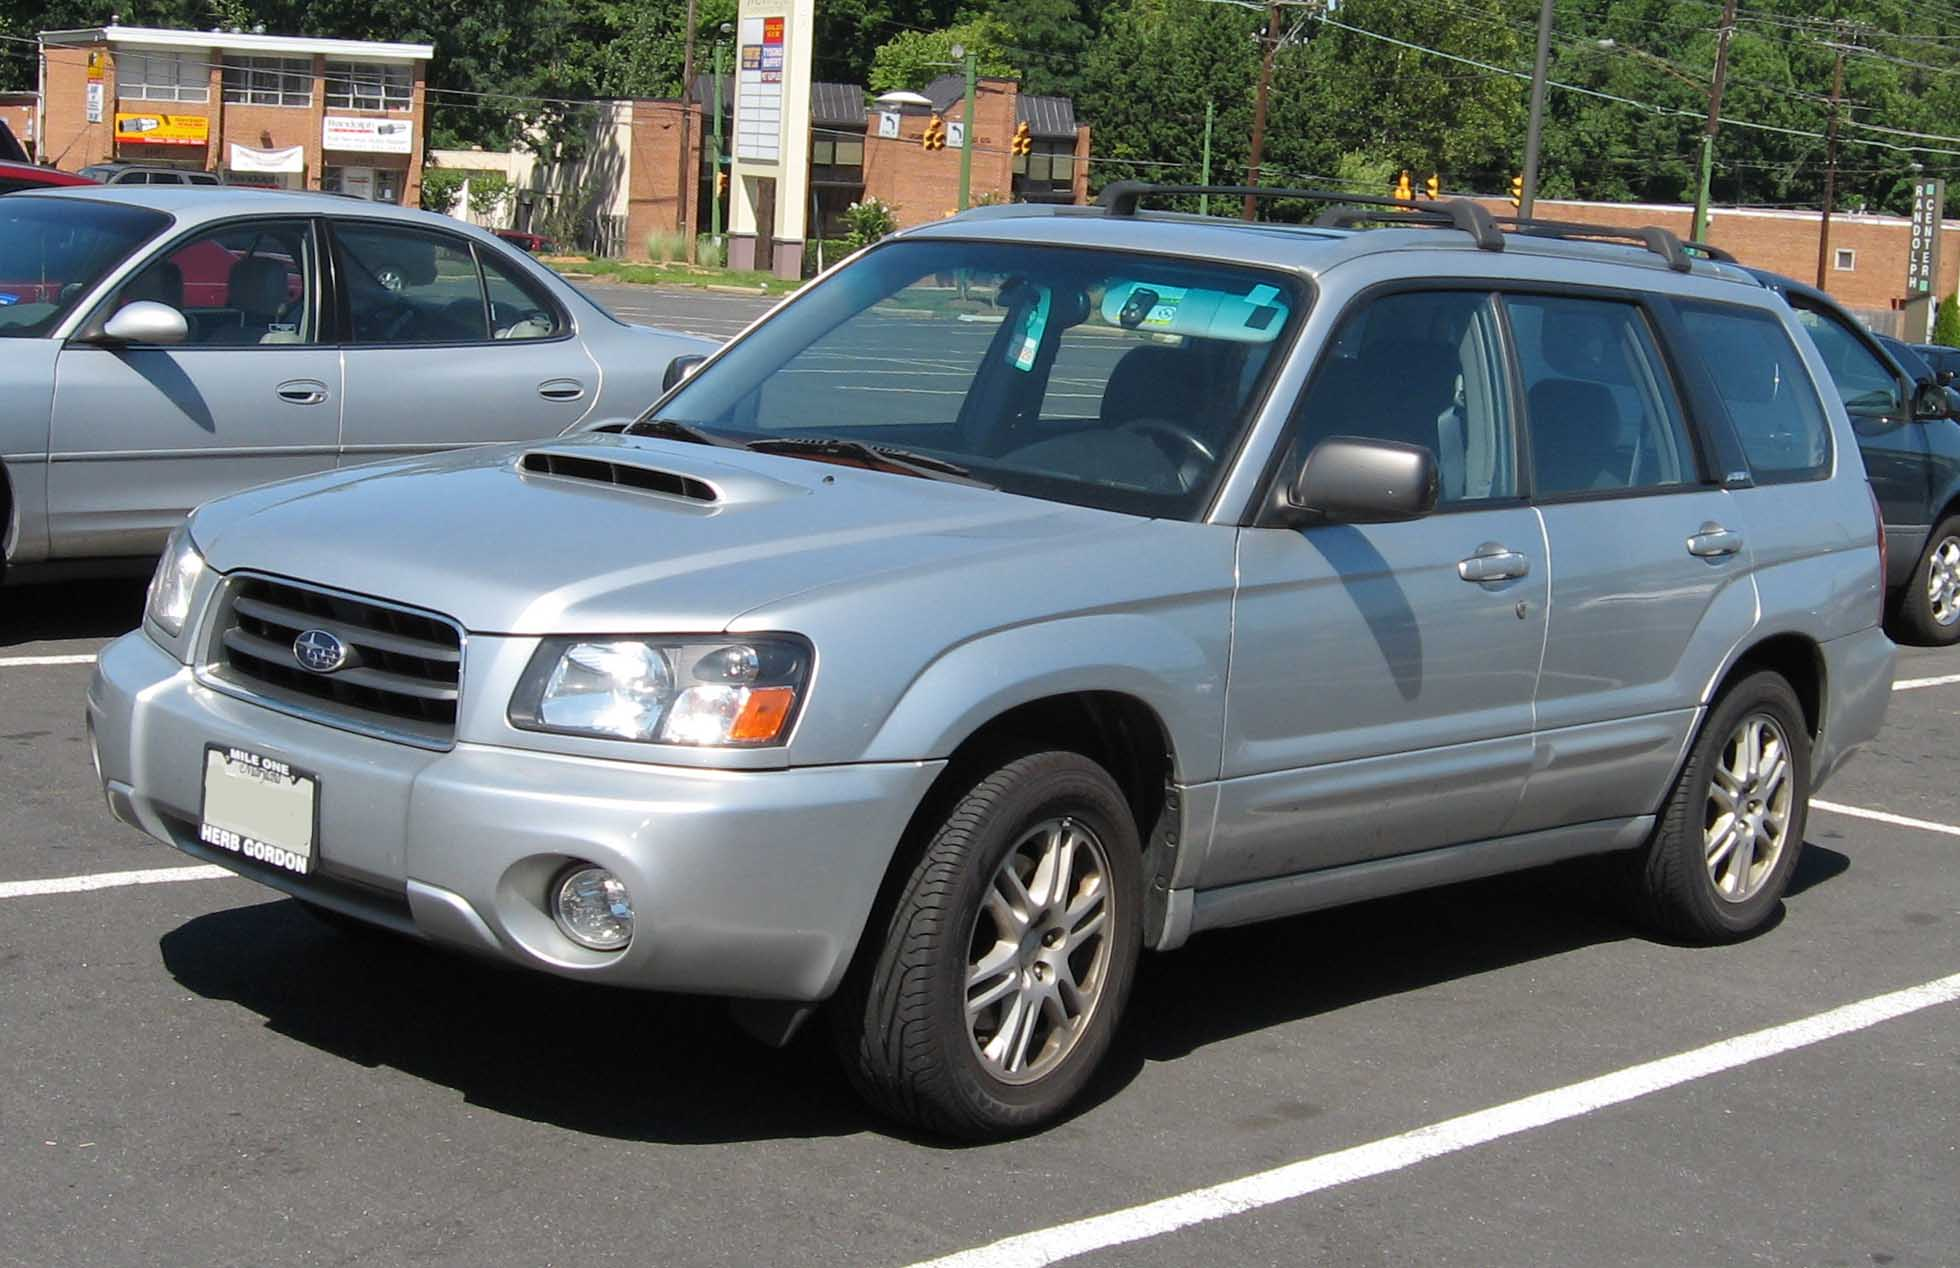 Subaru Forester 2003 Review Amazing and – Look at